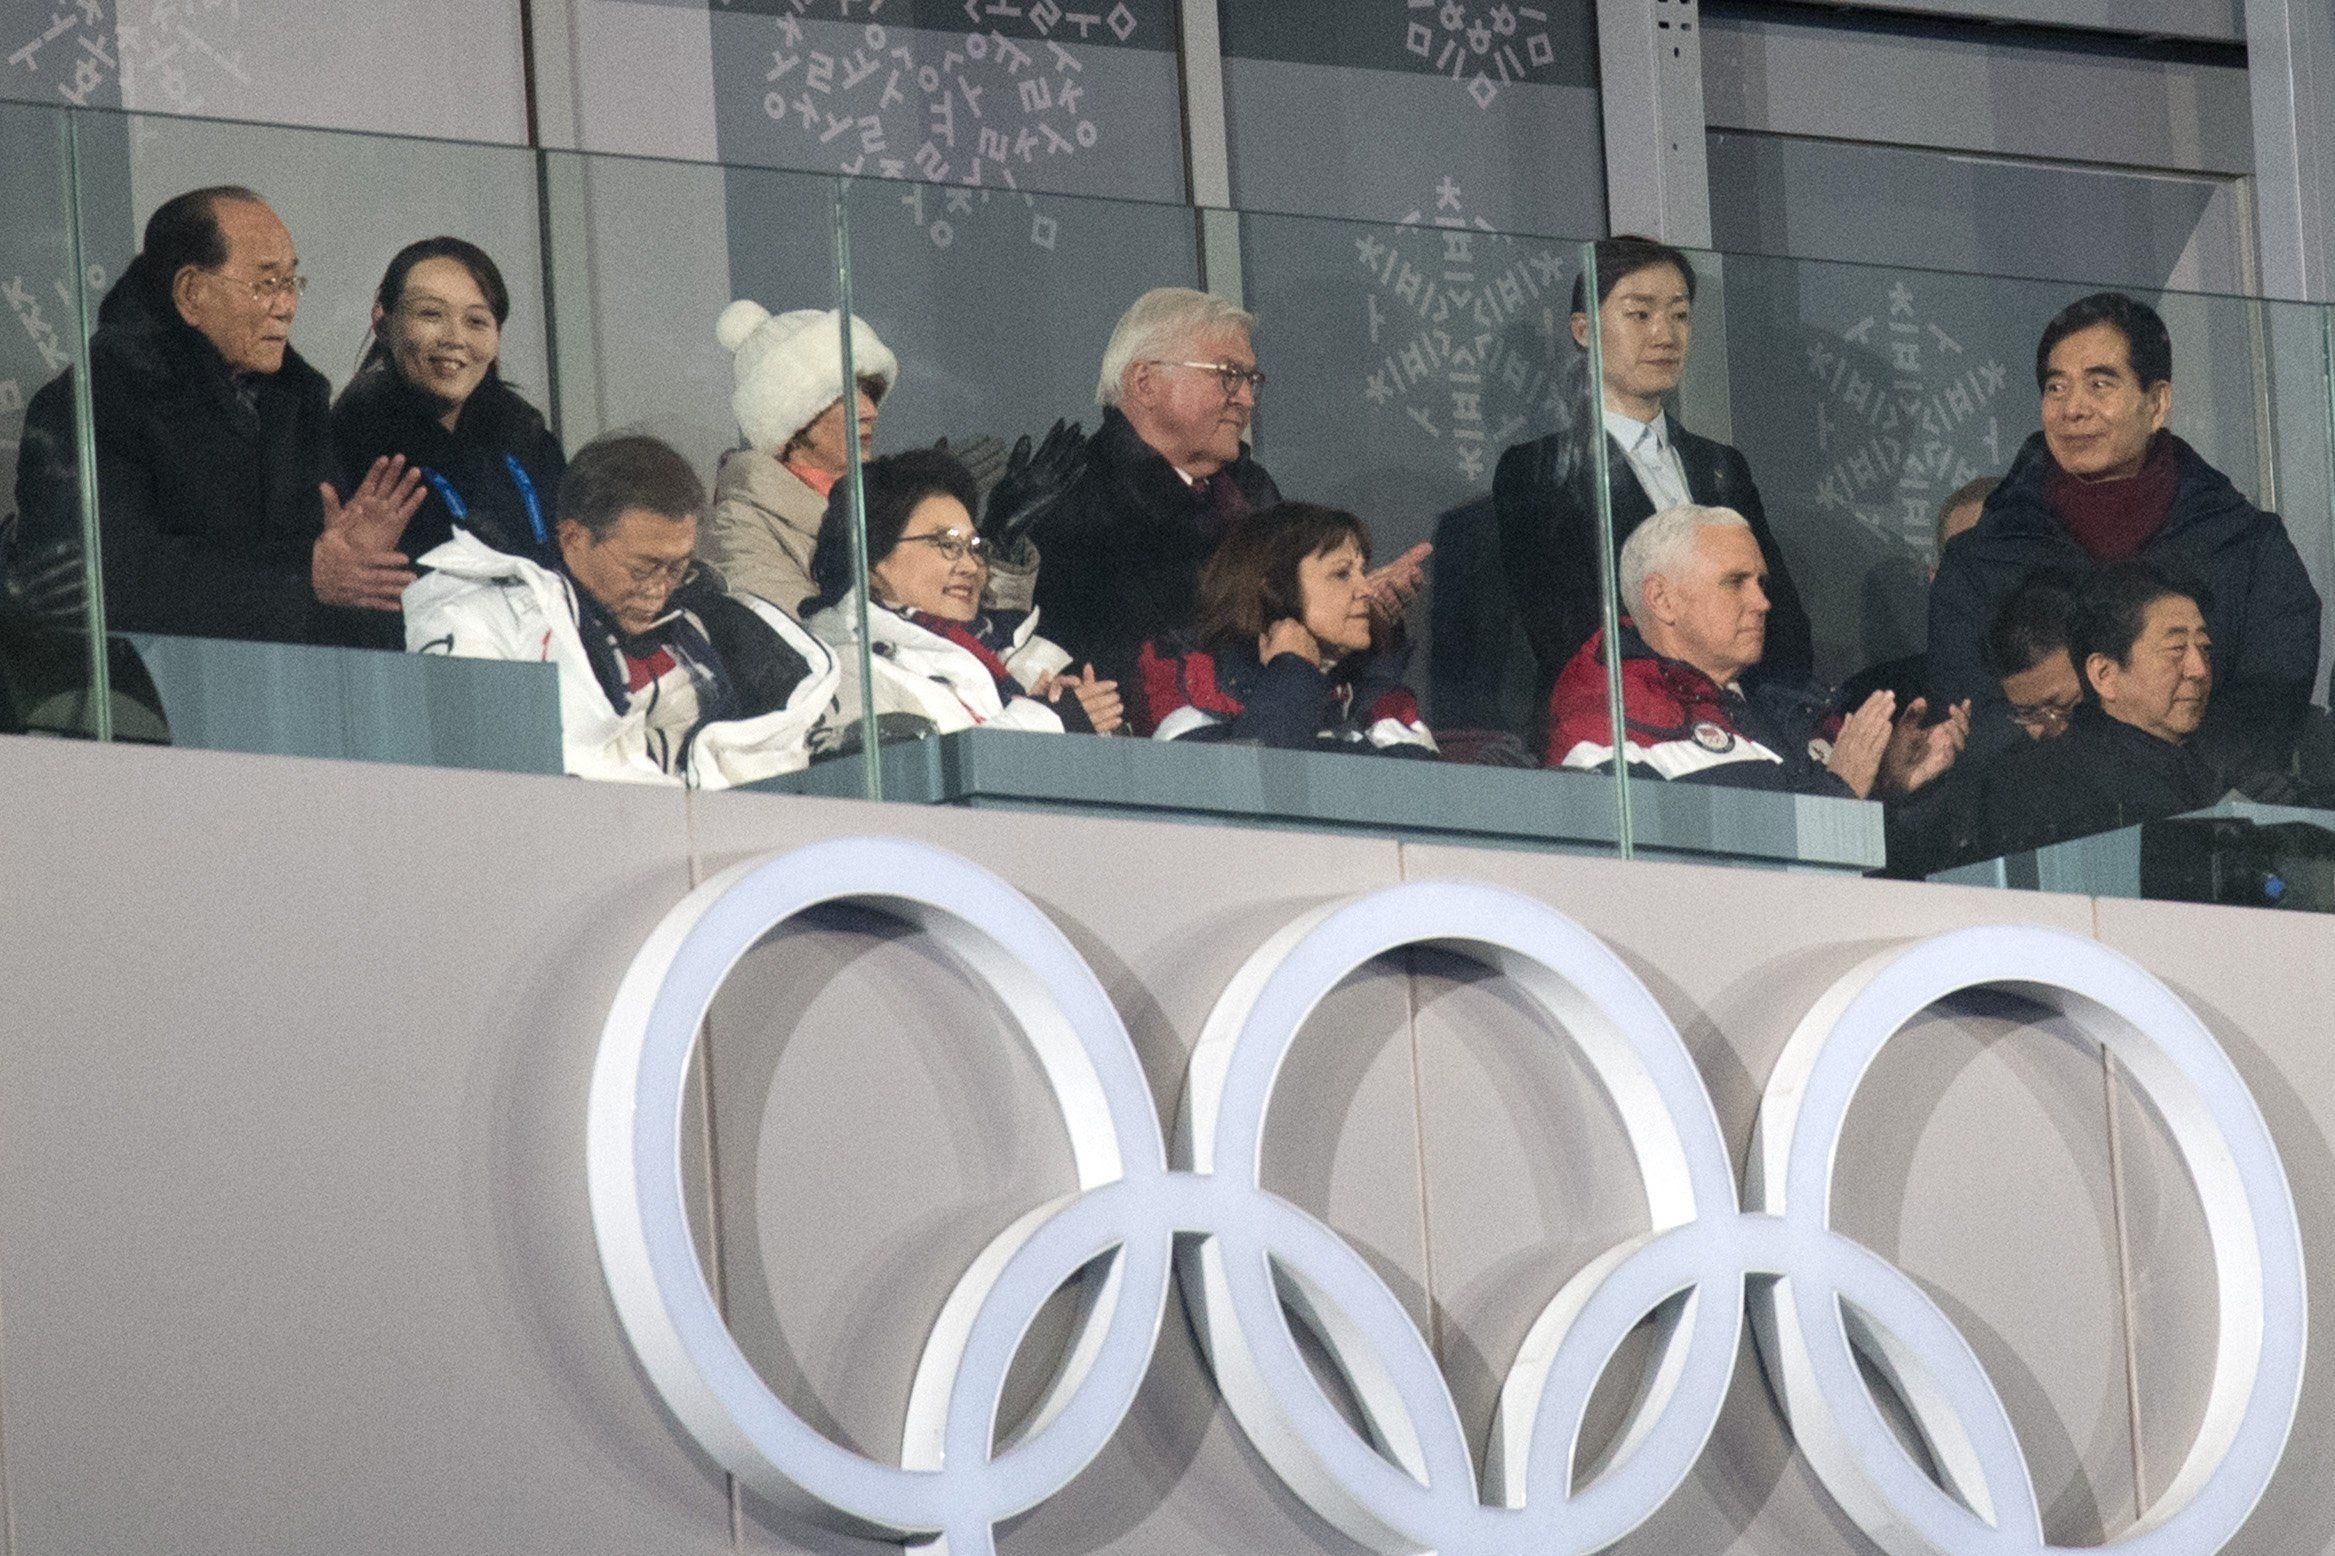 N Korea says no plans to meet USA officials at Olympics